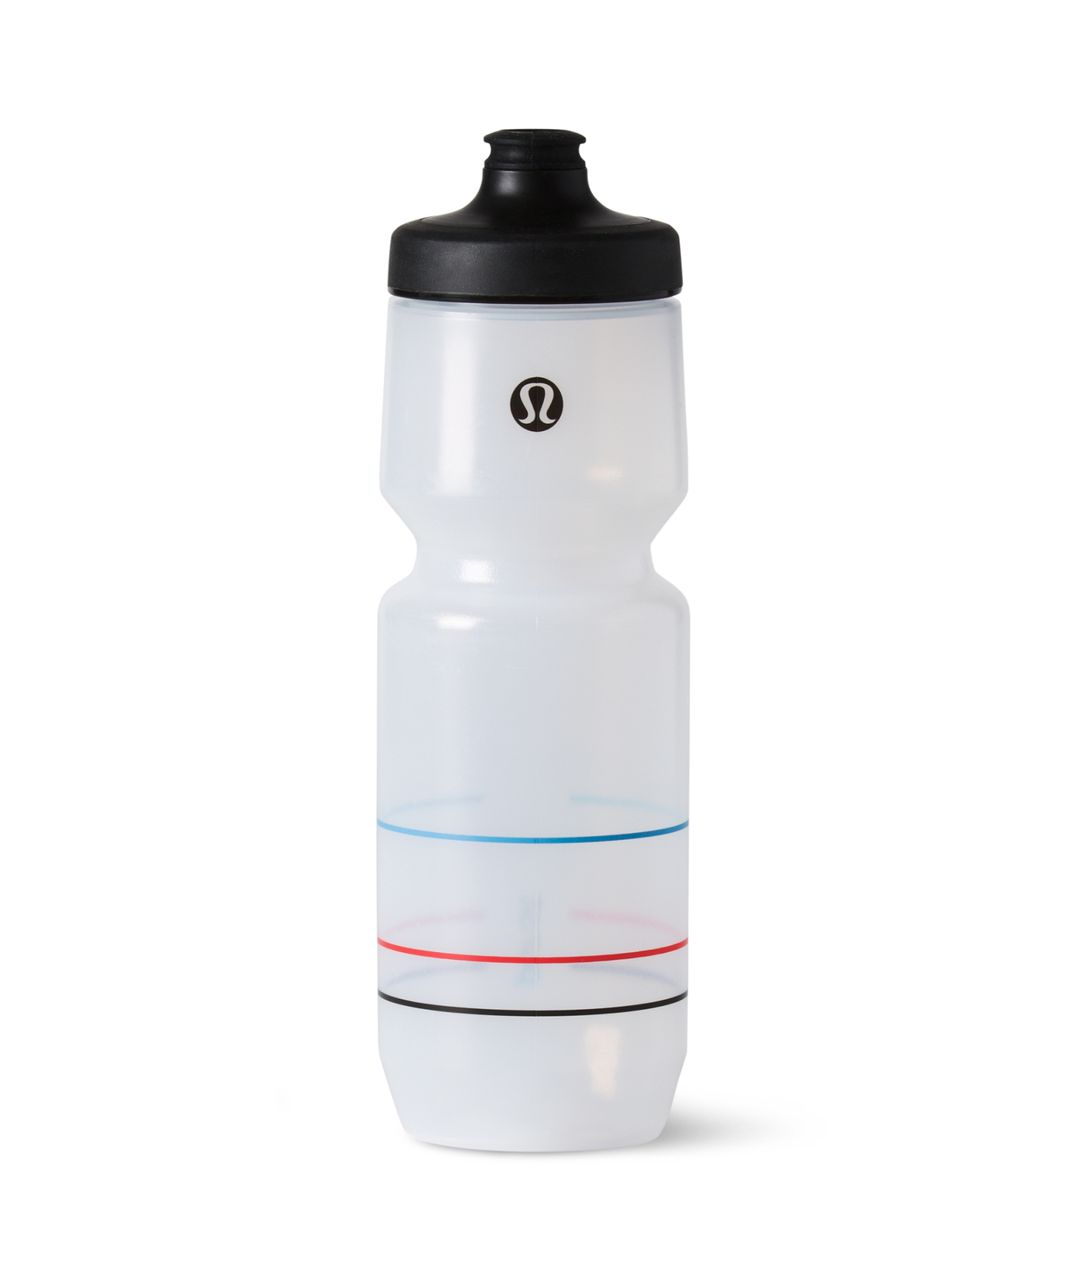 Lululemon Purist Cycling Waterbottle - Velodrome Velo Blue Prince Red